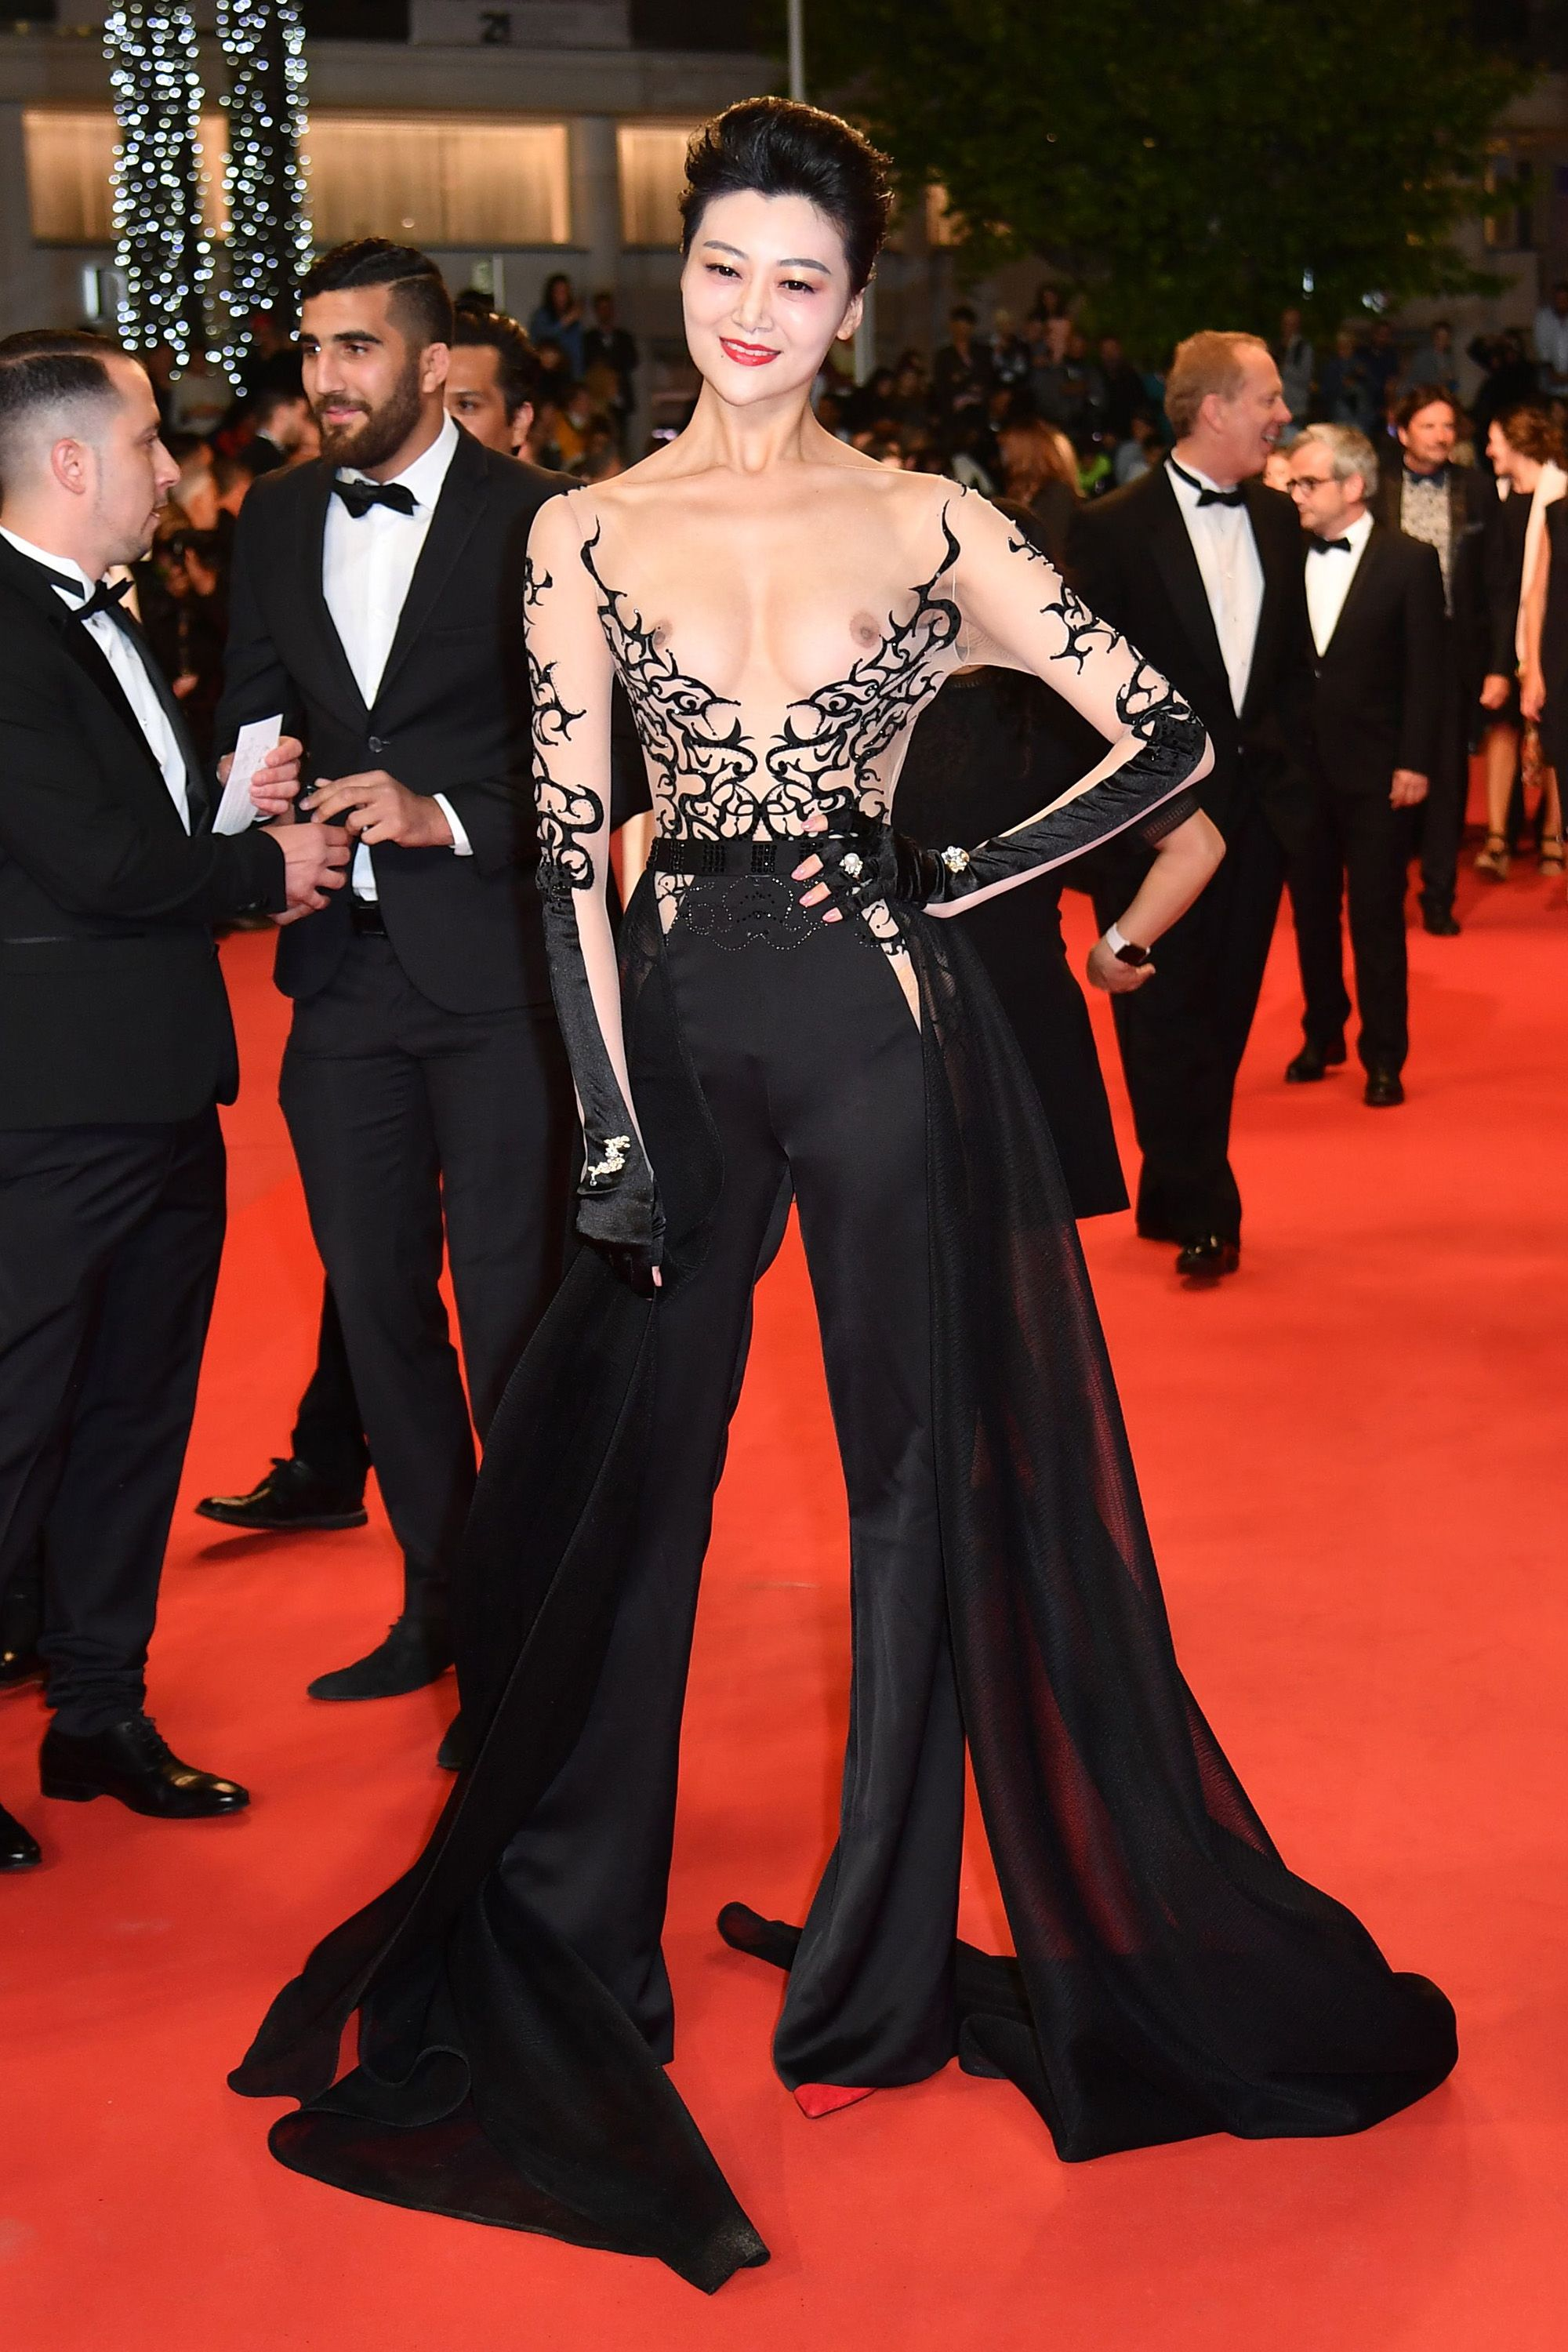 The Most Naked Dresses on The Cannes Red Carpet